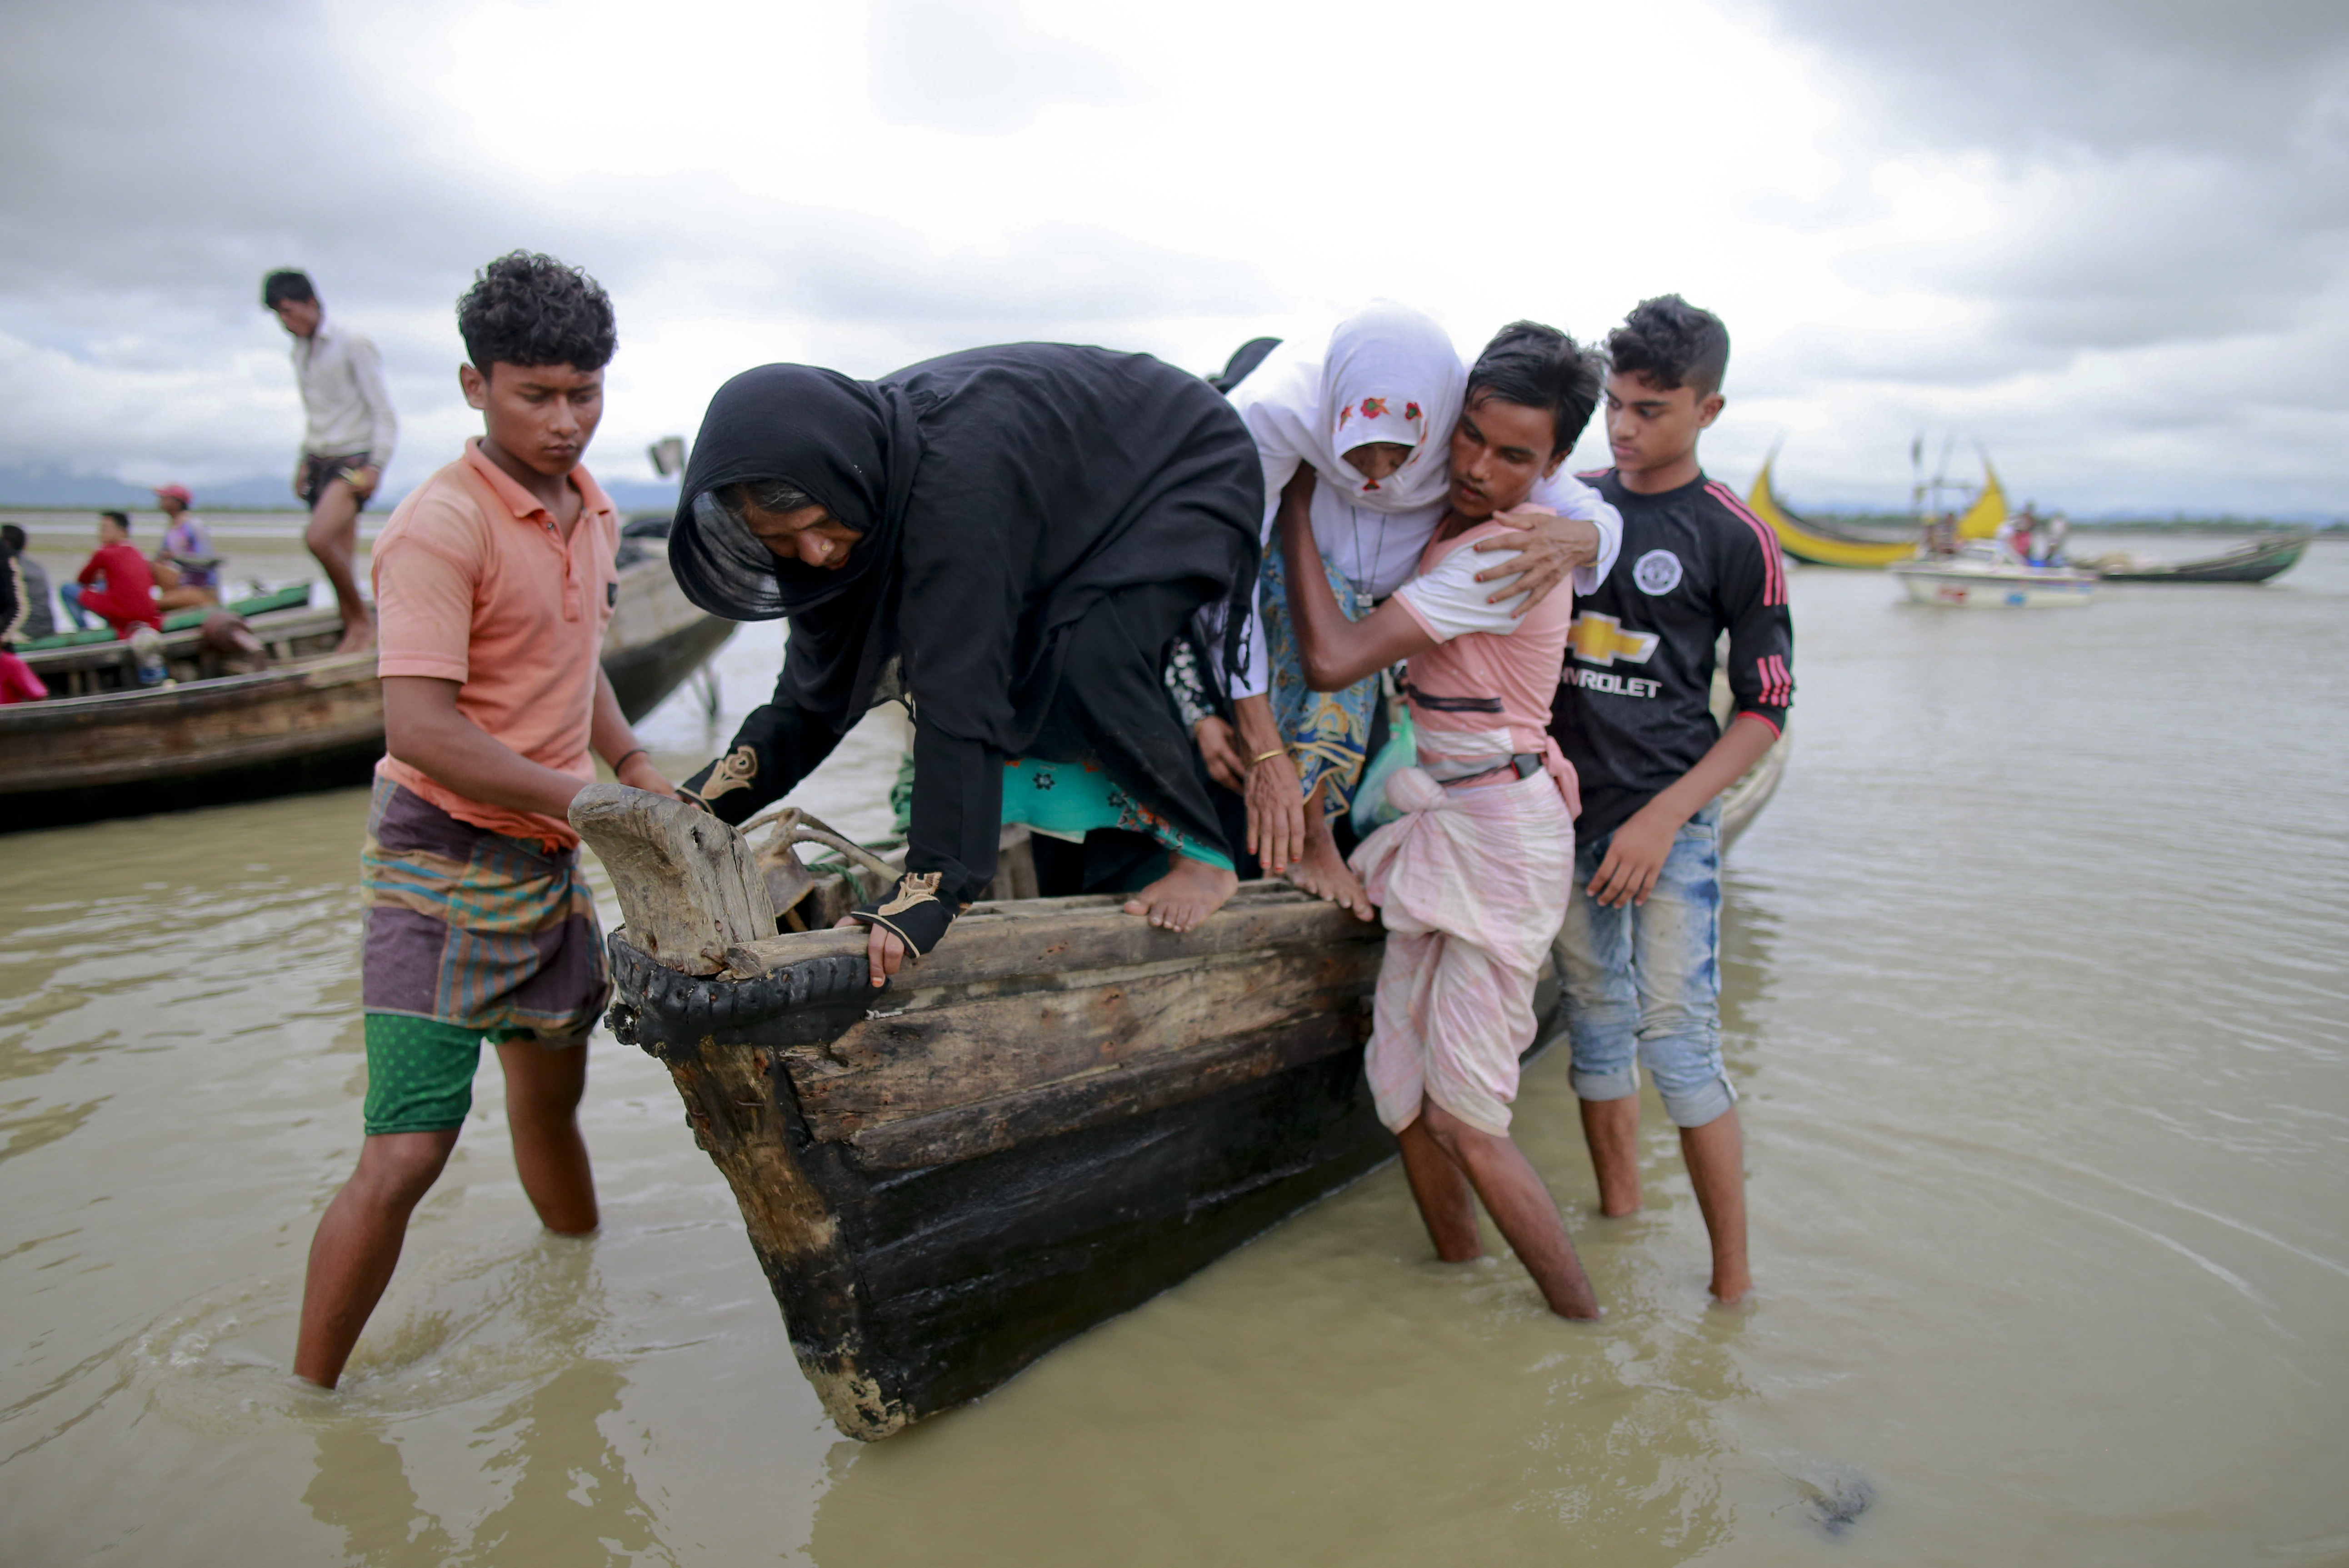 Bangladeshi villagers help two elderly Rohingya women from a boat after crossing a canal at Shah Porir Deep, in Teknak, Bangladesh, Aug. 31, 2017.